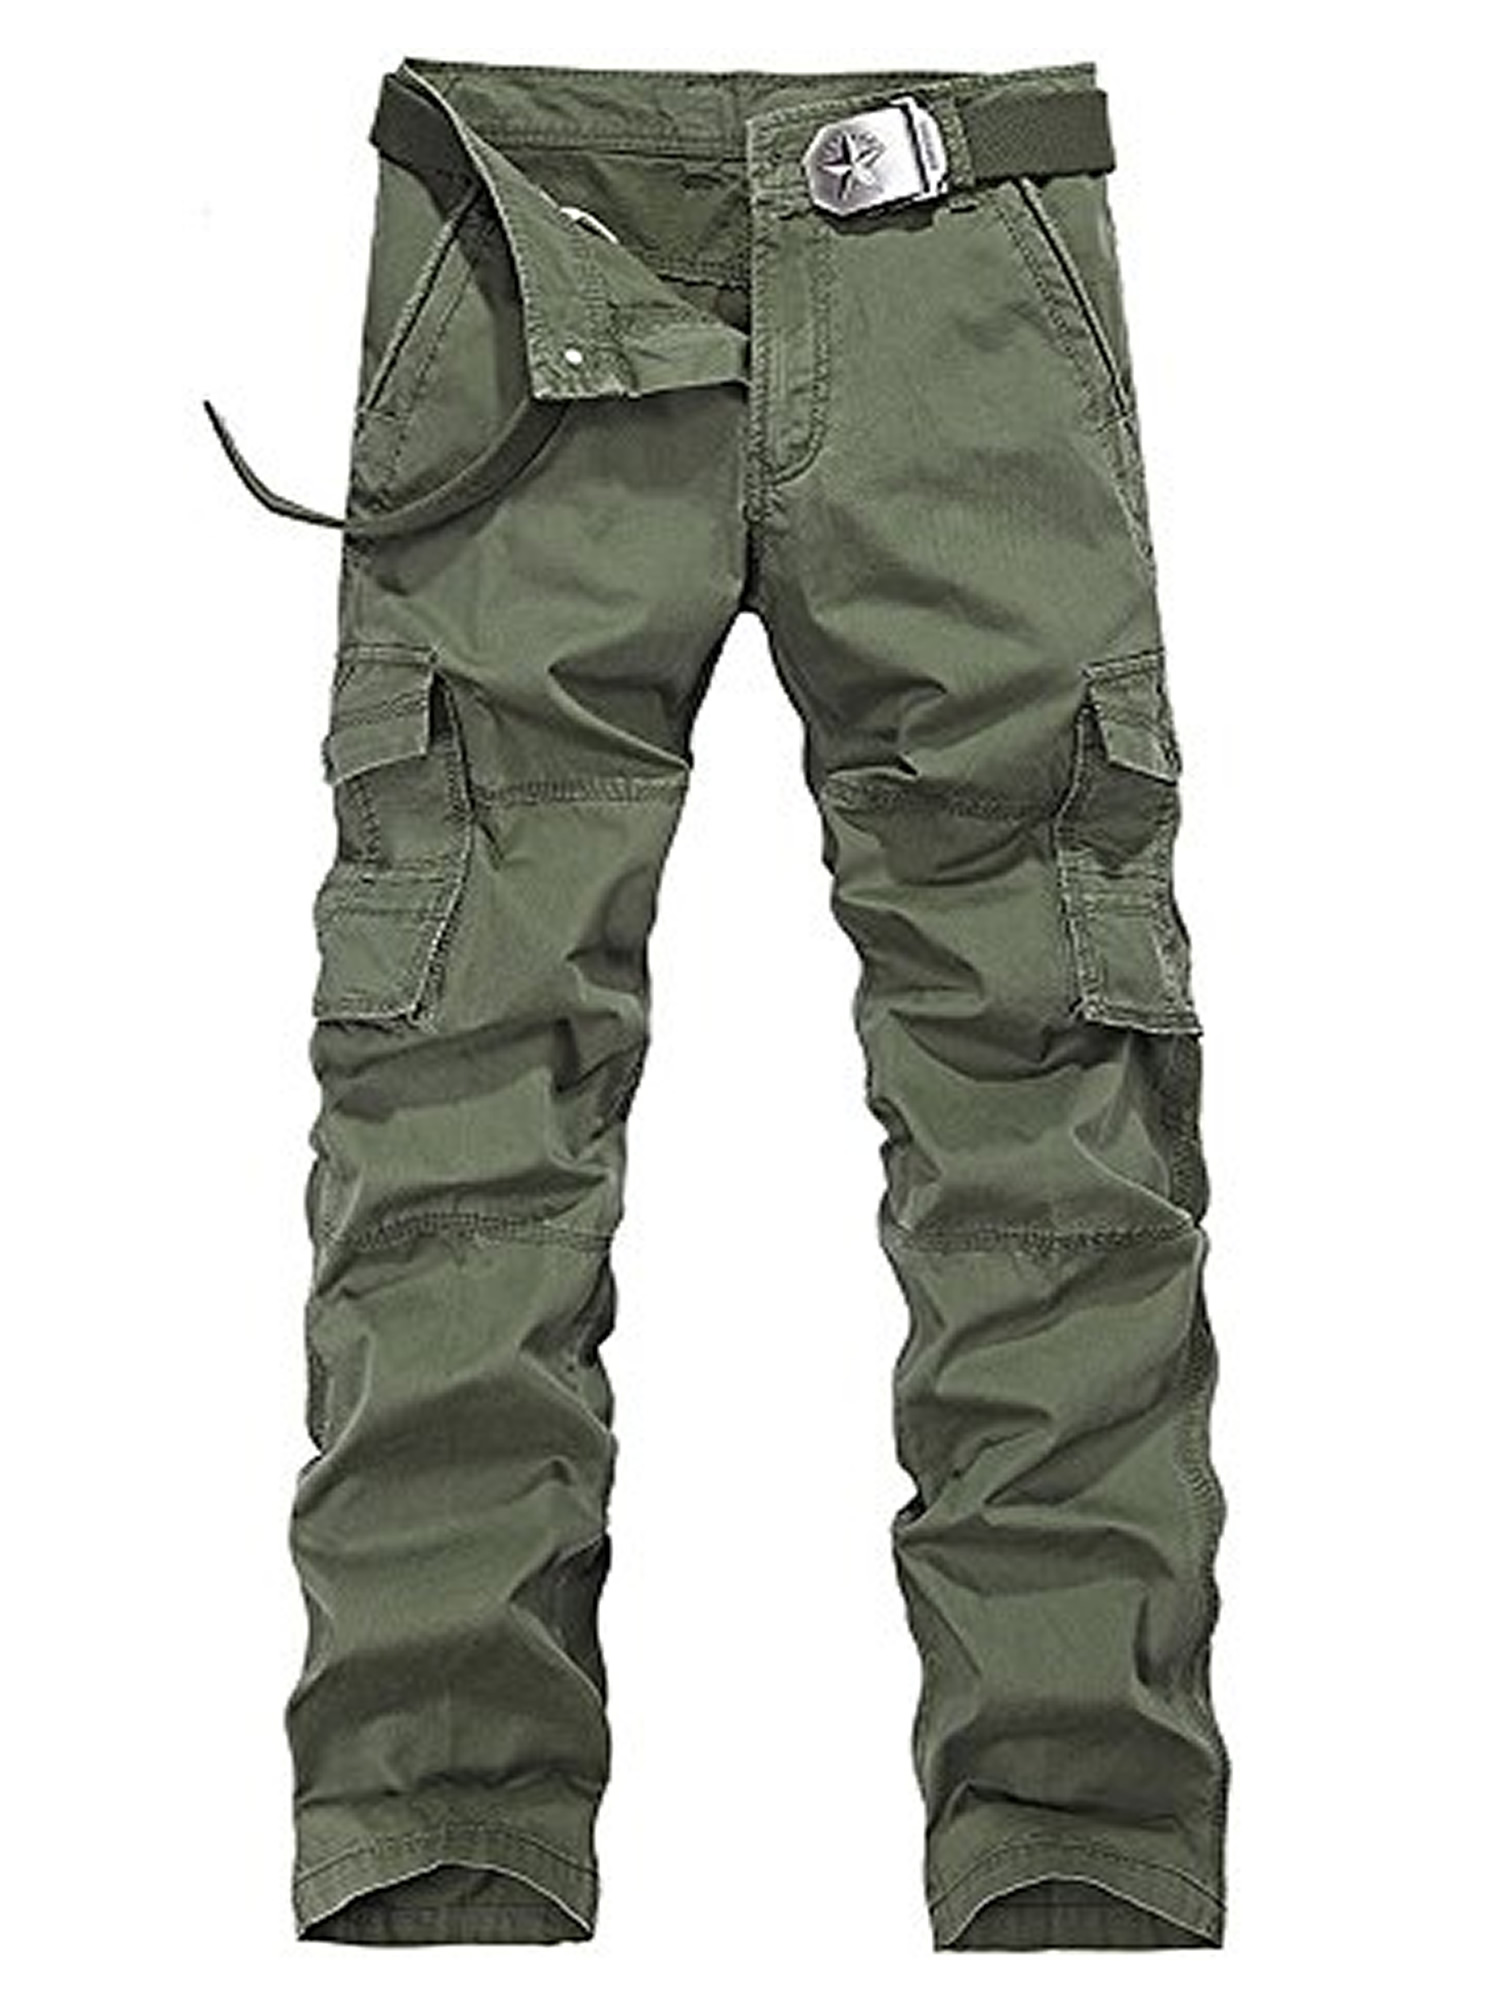 Men/'s Cotton Relax Fit Casual Cargo Pants Military Army Workwear Twill Trousers